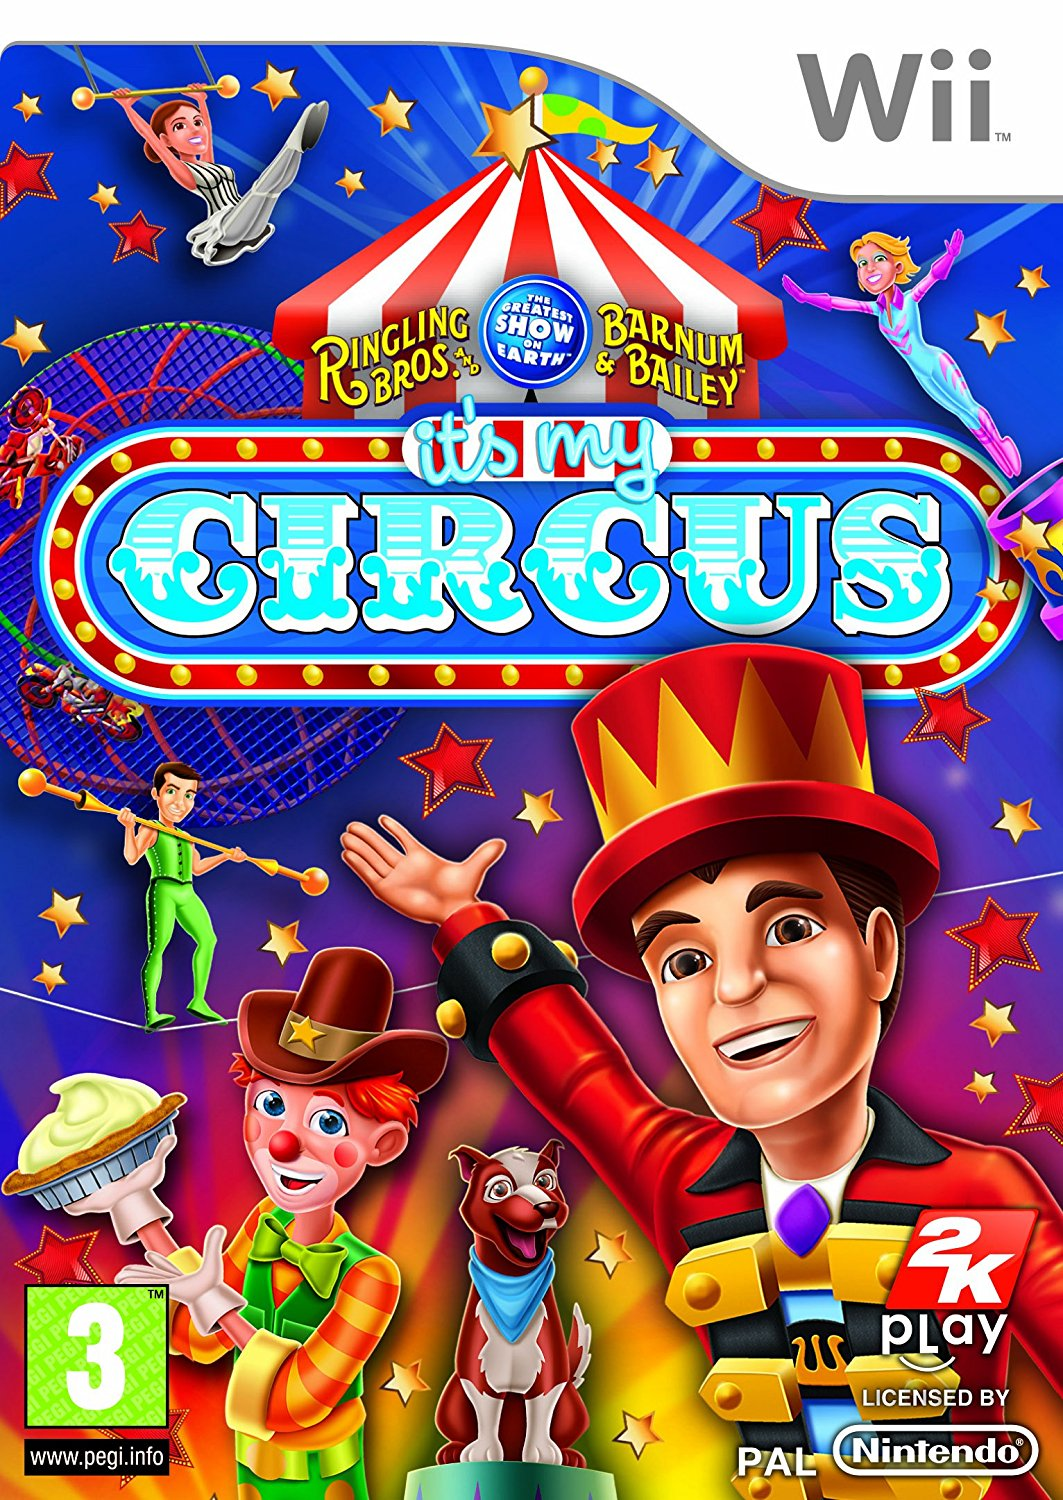 Its My Circus-Wii                                                                                                                                      By:Nintendo                                           Eur:26 Ден:899